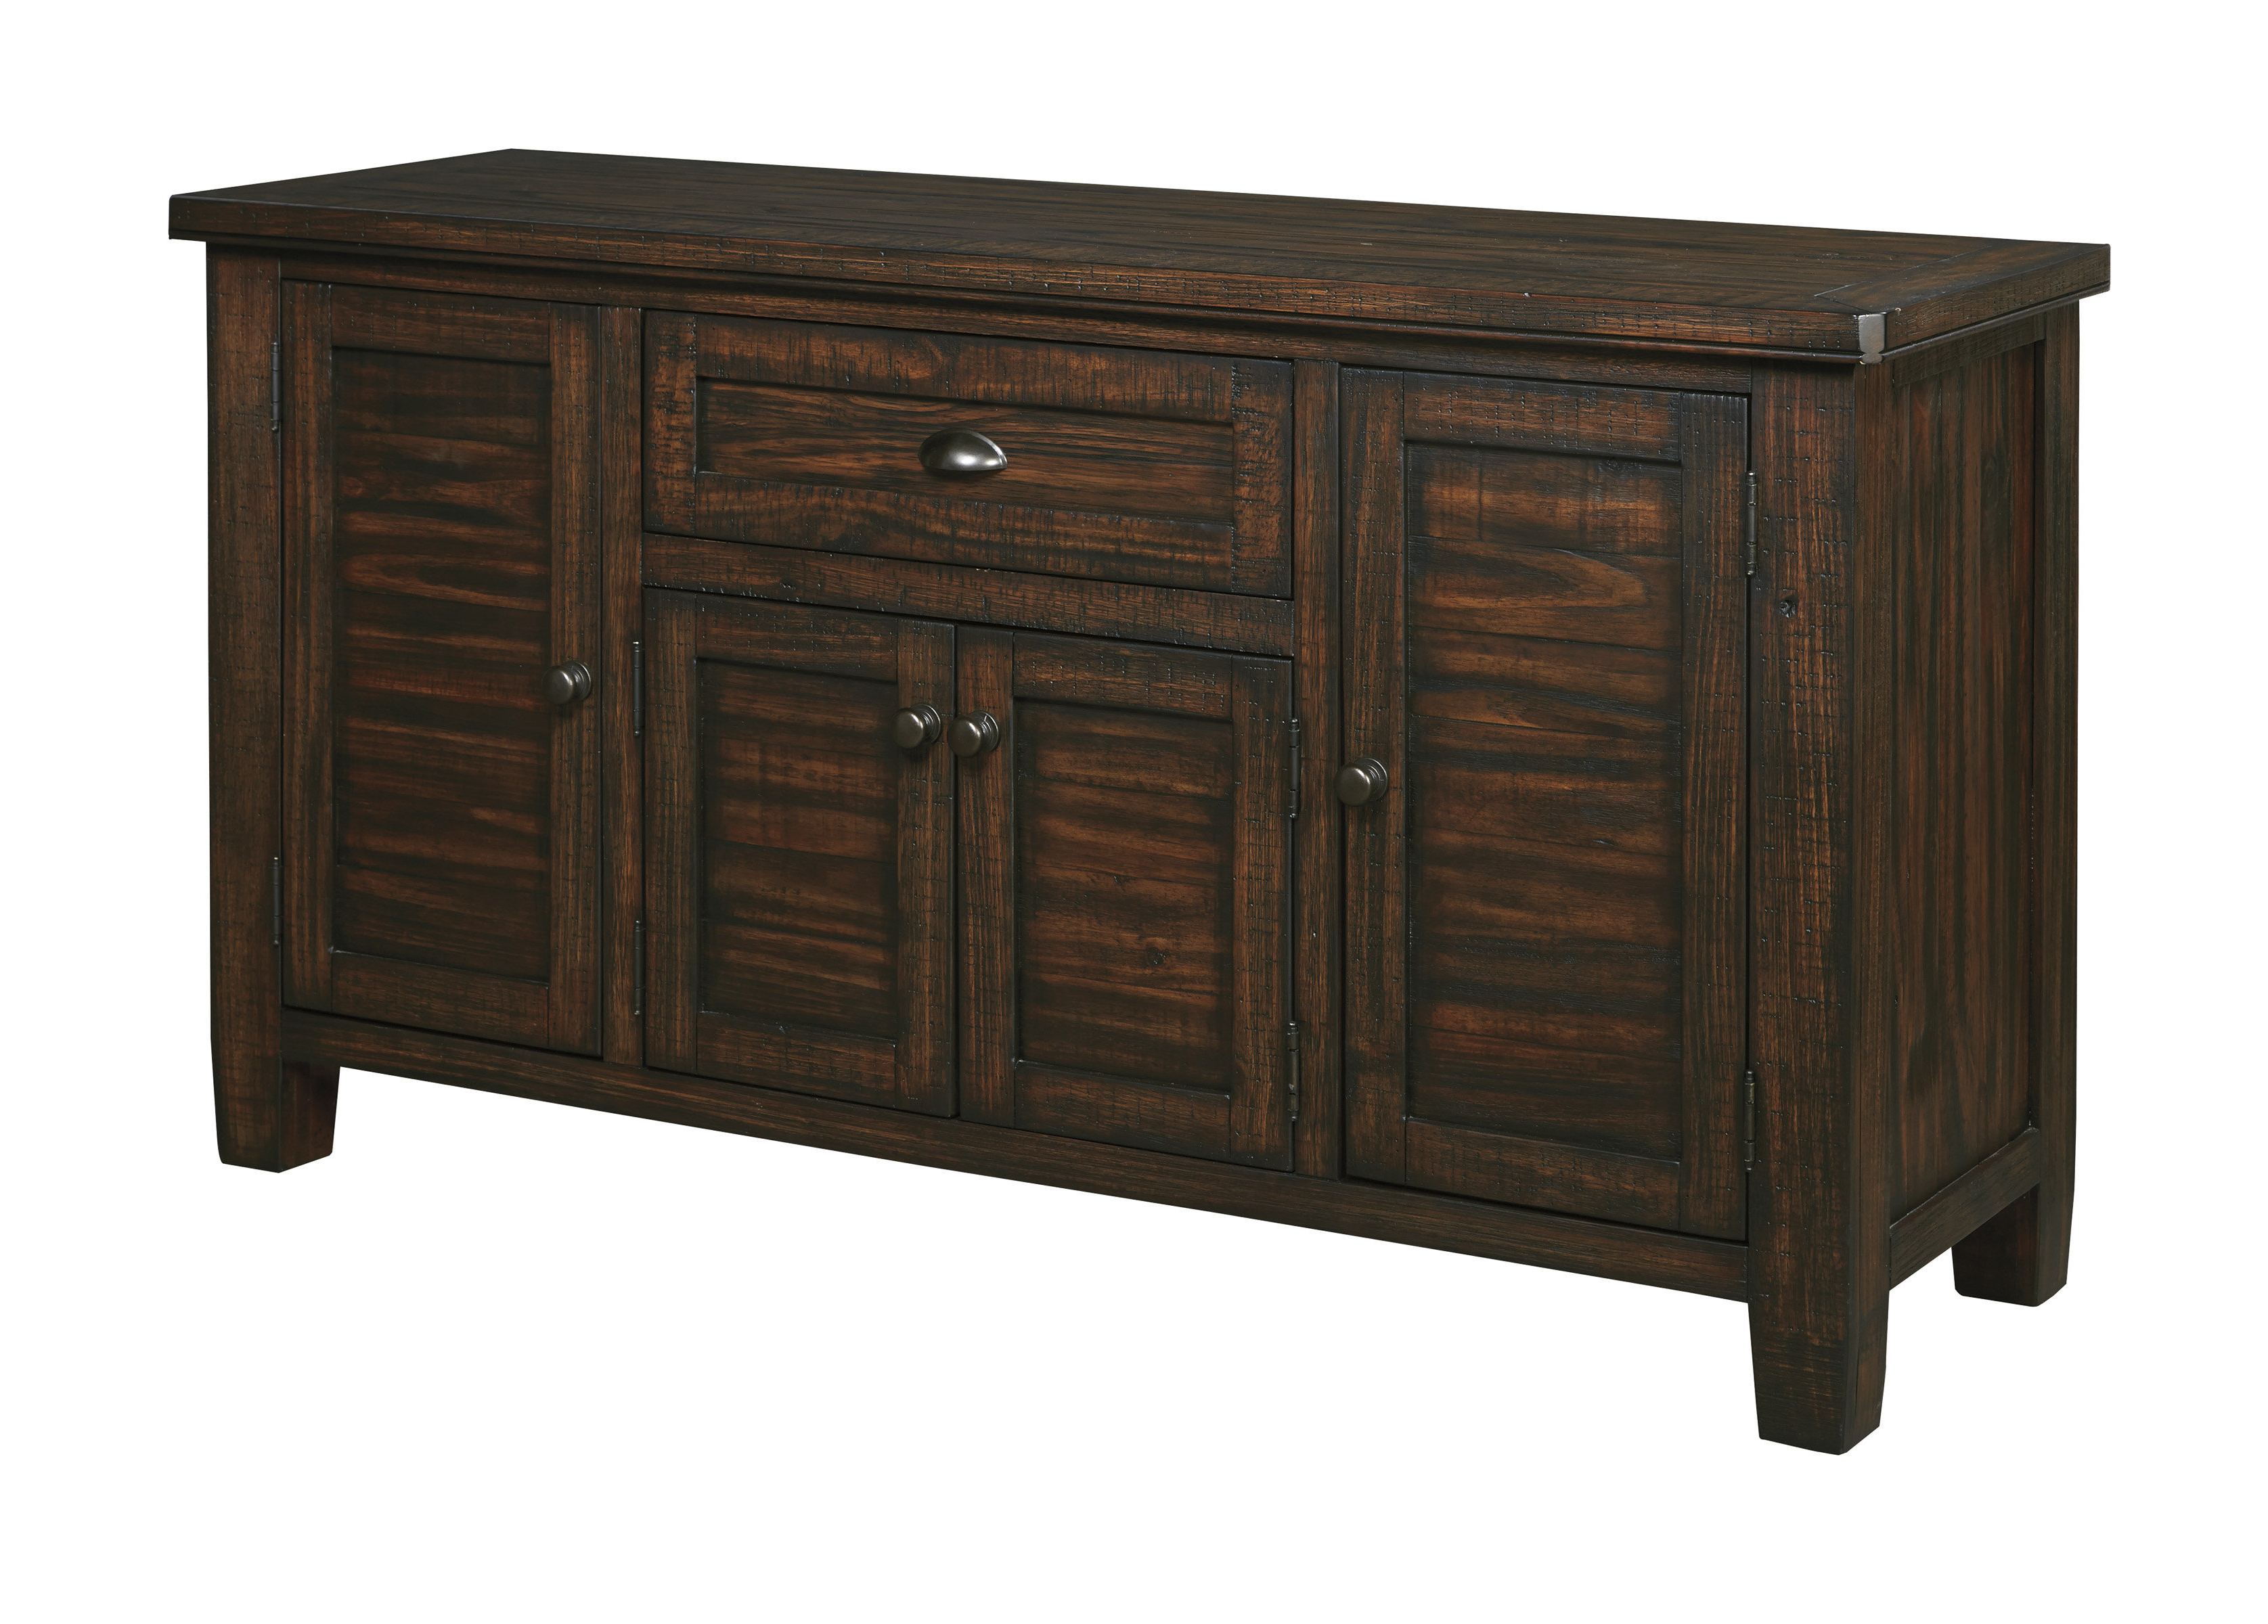 Popular Seiling Sideboards With Regard To Chaffins Sideboard (View 2 of 20)